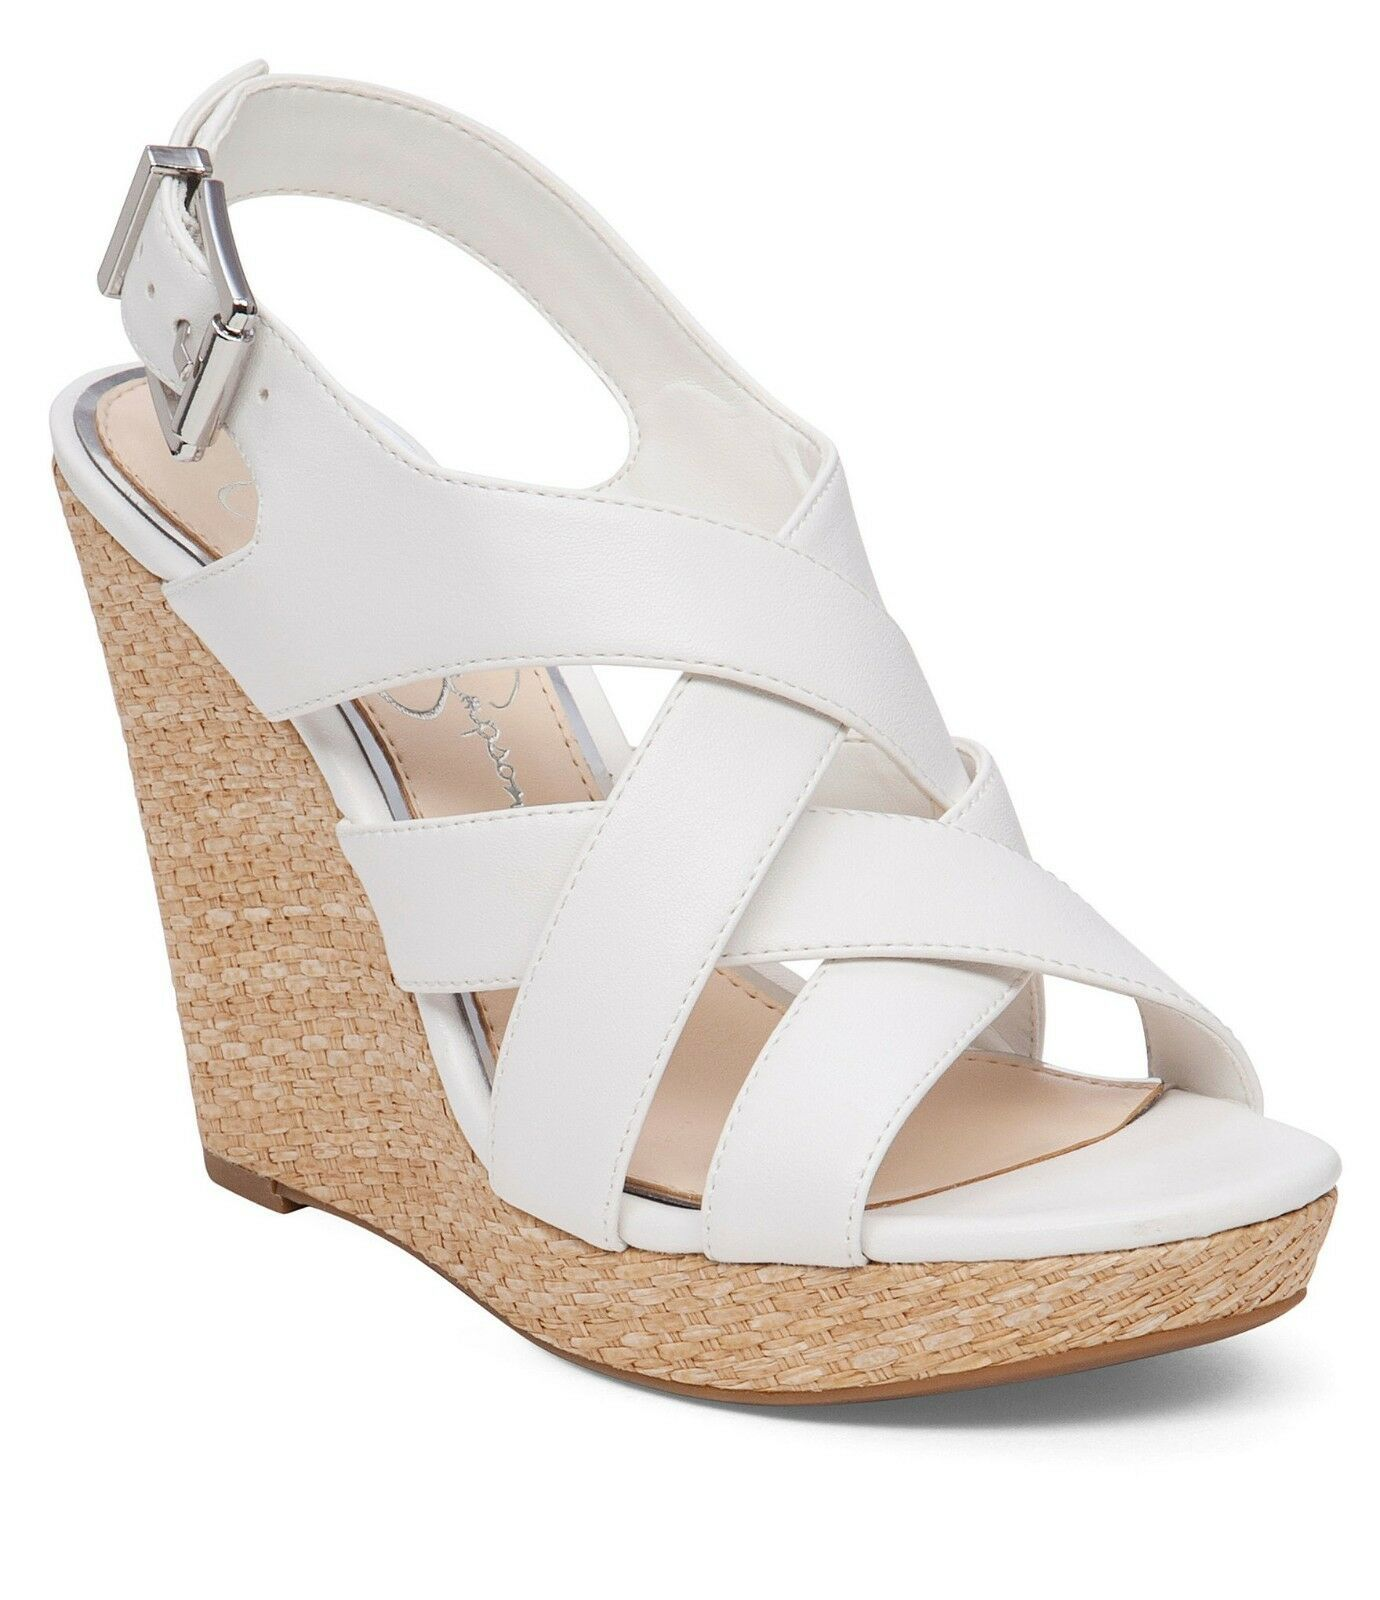 Primary image for Jessica Simpson Jamallo Wedges, Sizes 6.5-10 Powder Sleek JS-Jamallo White